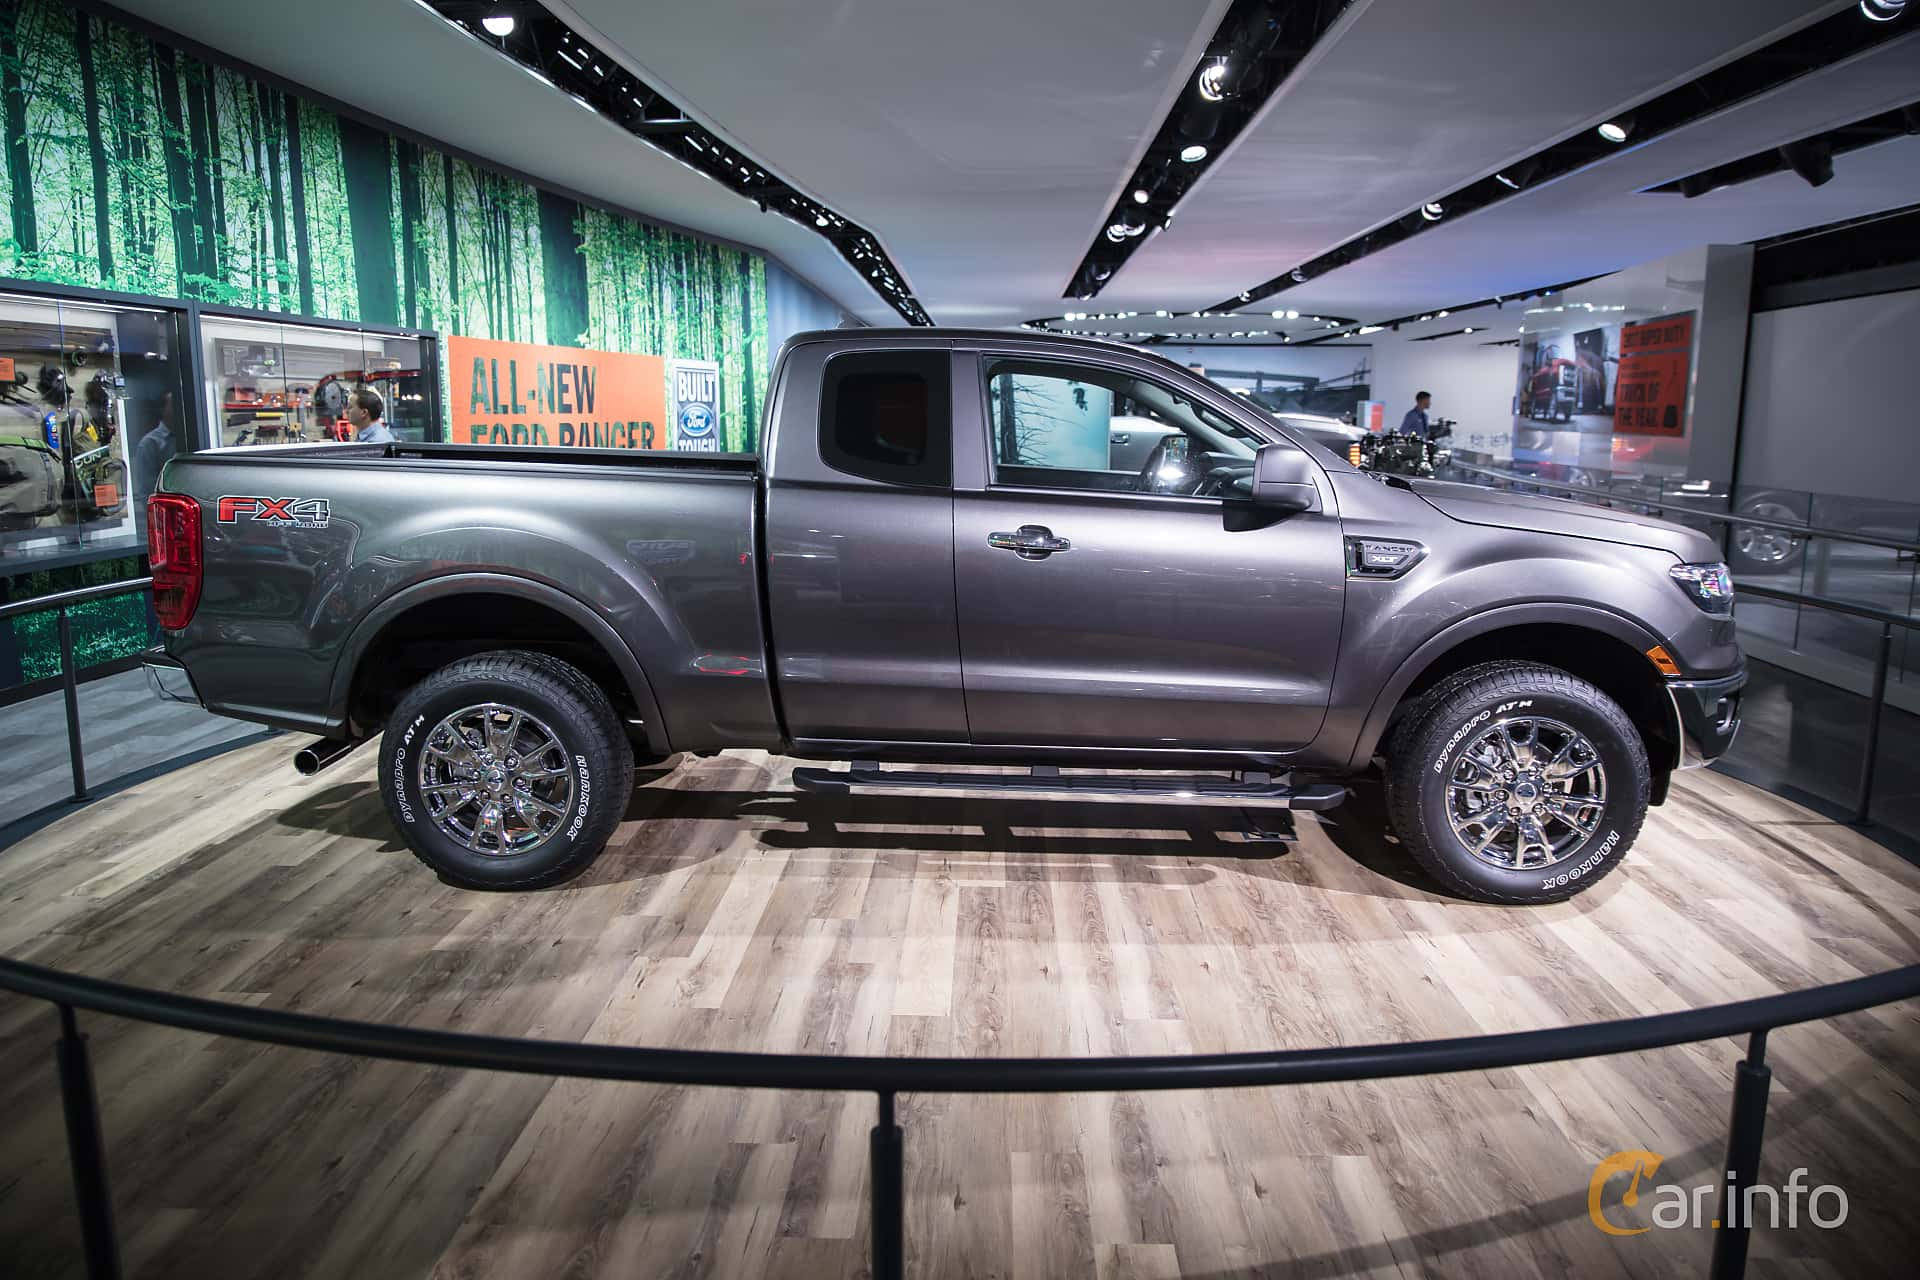 5 images of Ford Ranger SuperCab 2 3 EcoBoost 4x4 Automatic